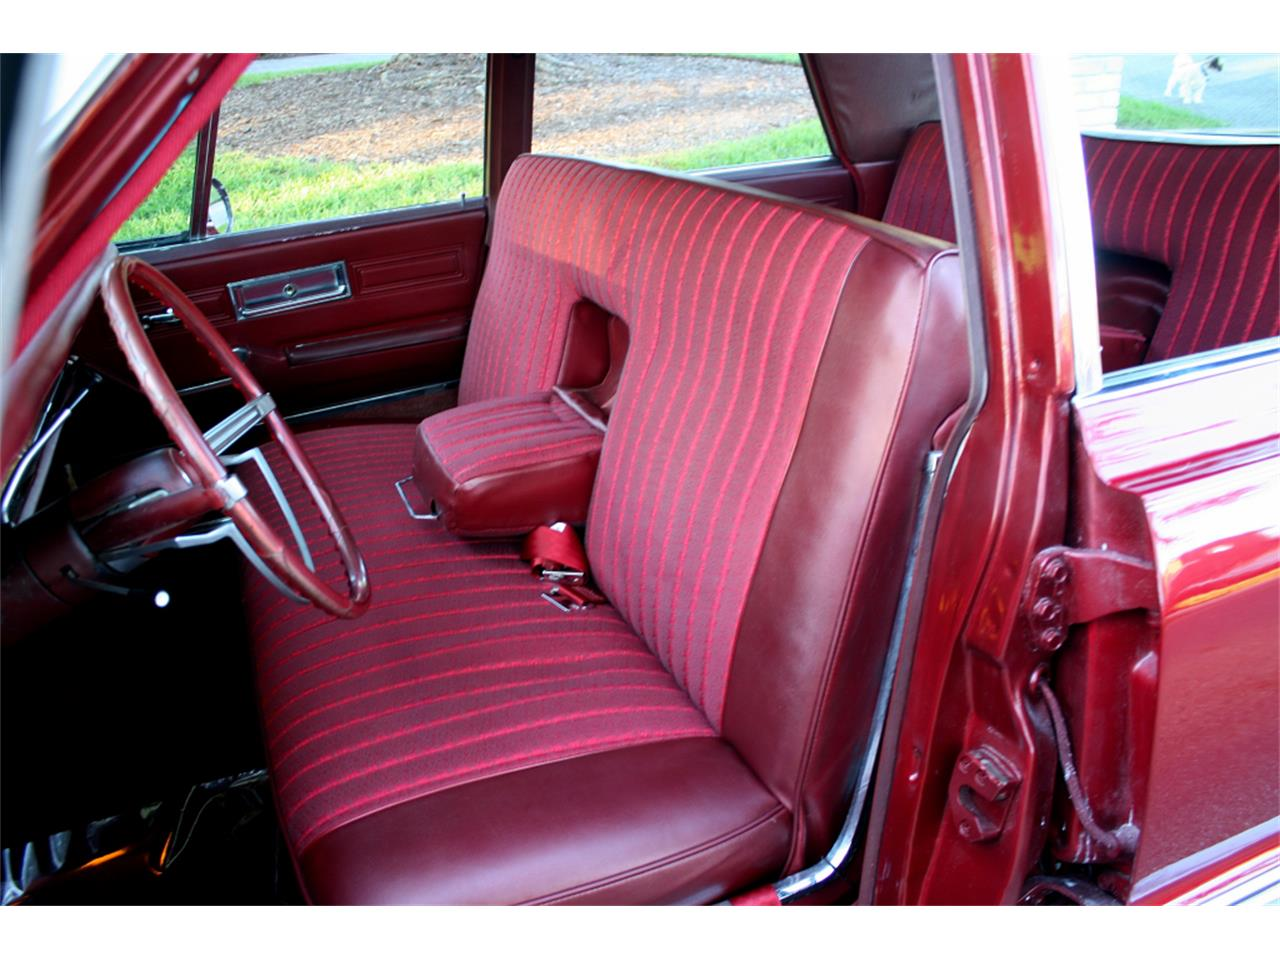 Large Picture of 1968 Chrysler Imperial - MA1H